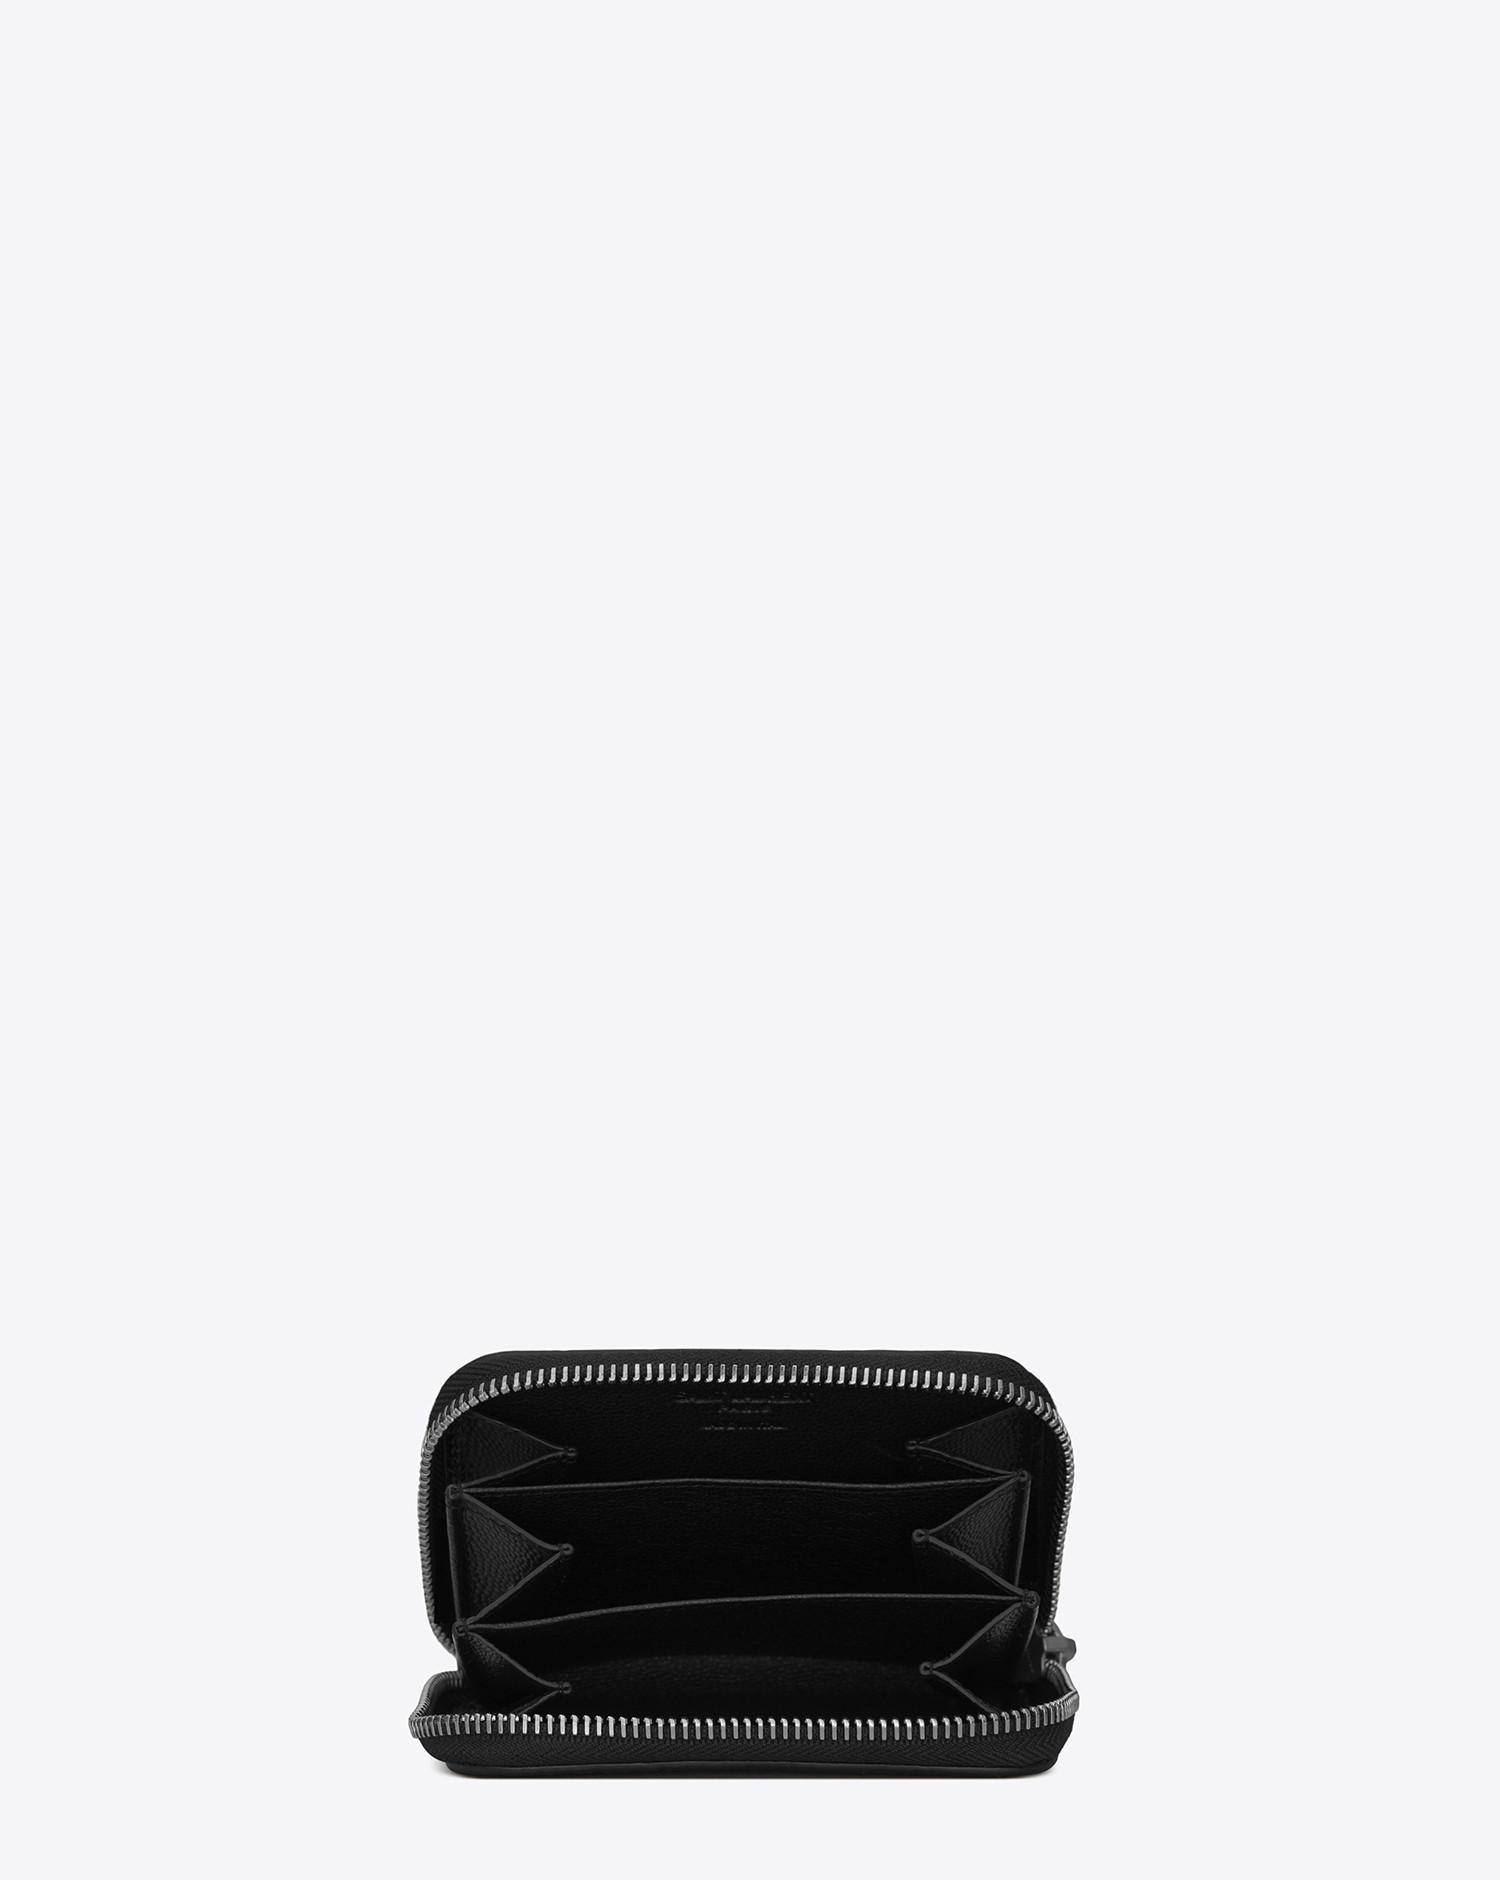 9cc466978a9 Lyst - Saint Laurent Zipped Coin Purse In Crocodile Embossed Leather in  Black for Men - Save 5.79710144927536%